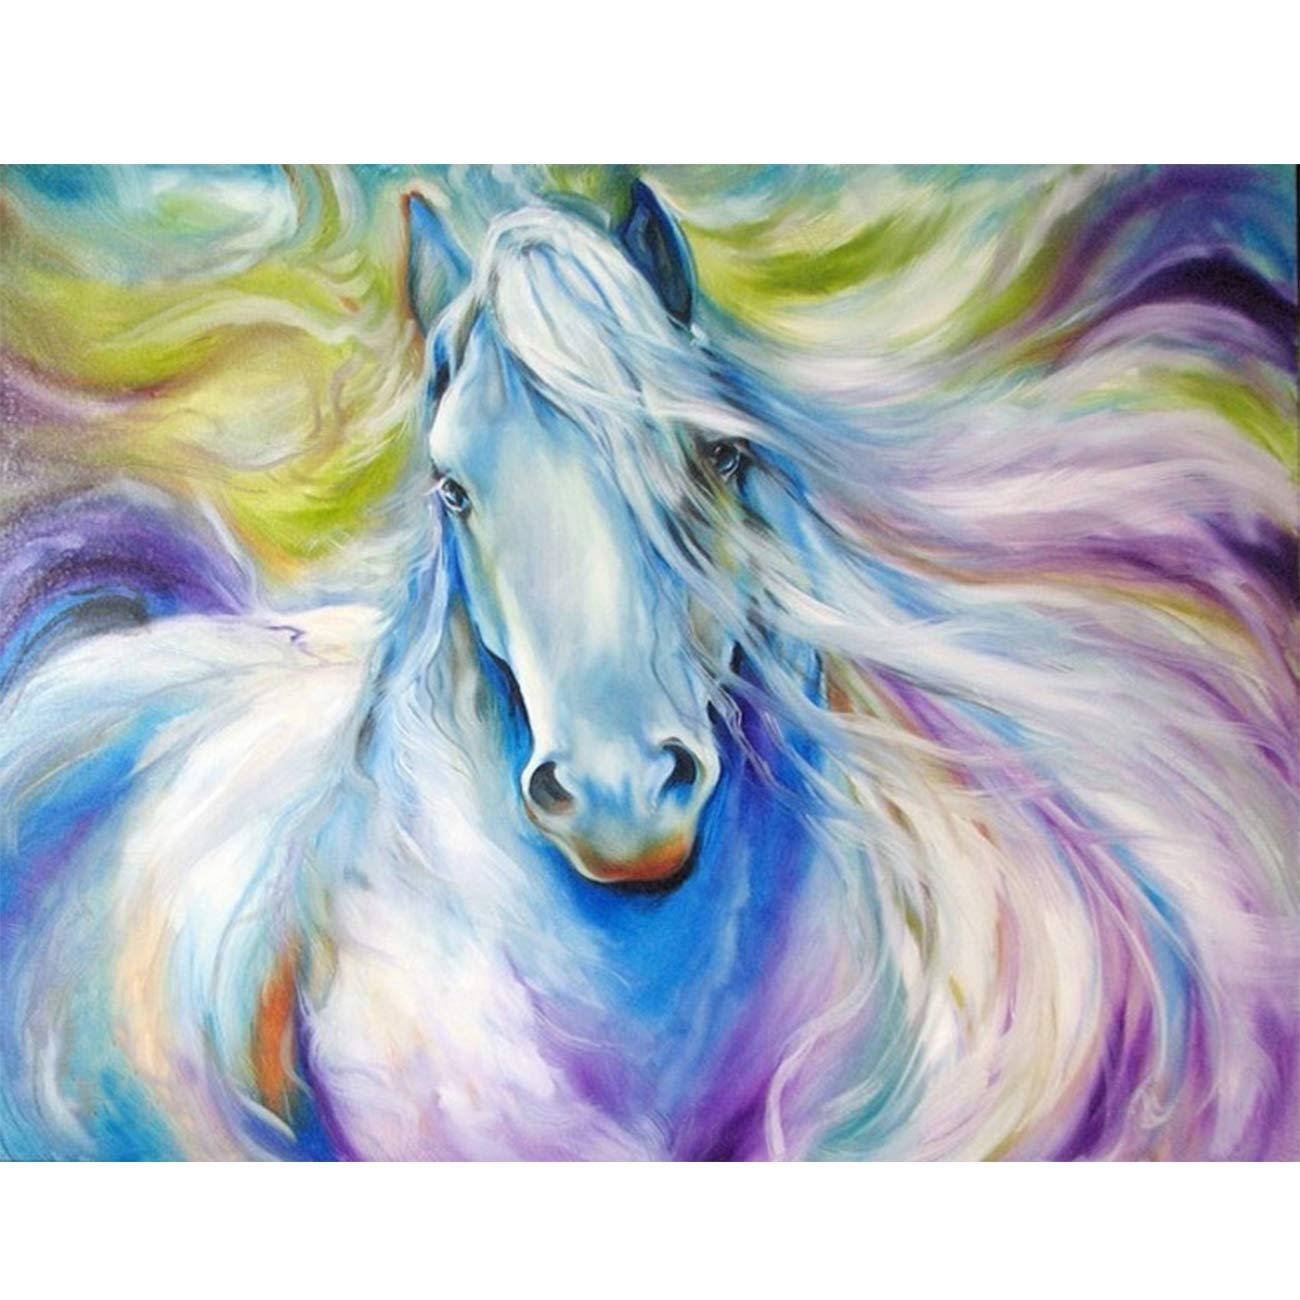 SKRYUIE 5D Diamond Painting The Horse Painting Full Drill by Number, Paint with Diamonds Art Rhinestone Embroidery Cross Stitch Craft Decor 30x40cm (12x16inch)